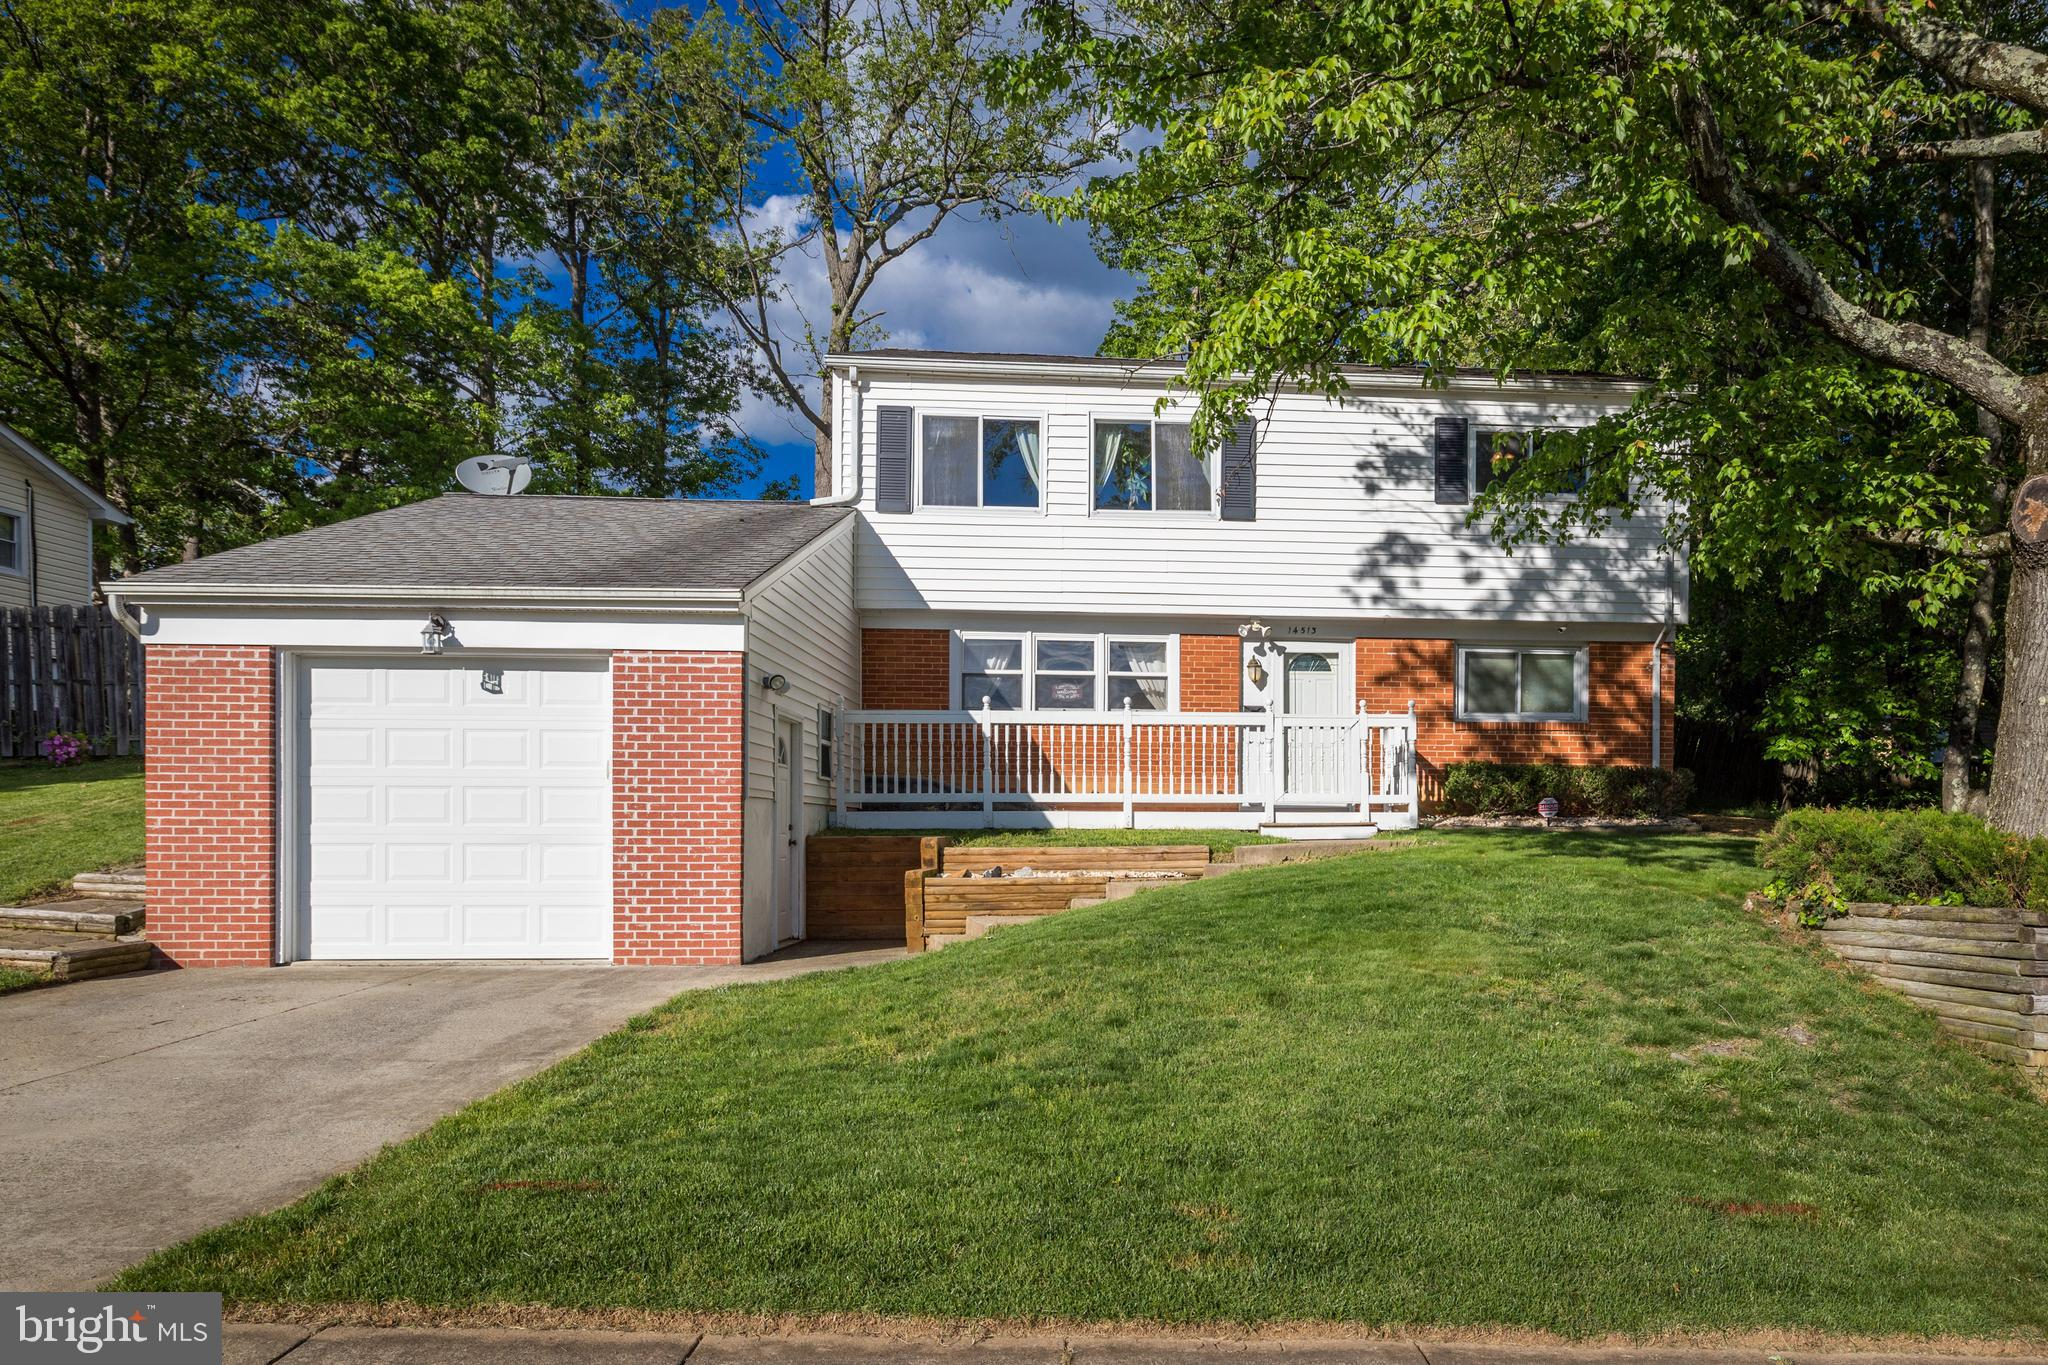 A well-maintained three bedrooms and 1.5 bathrooms with 1-car garage detached home conveniently loca